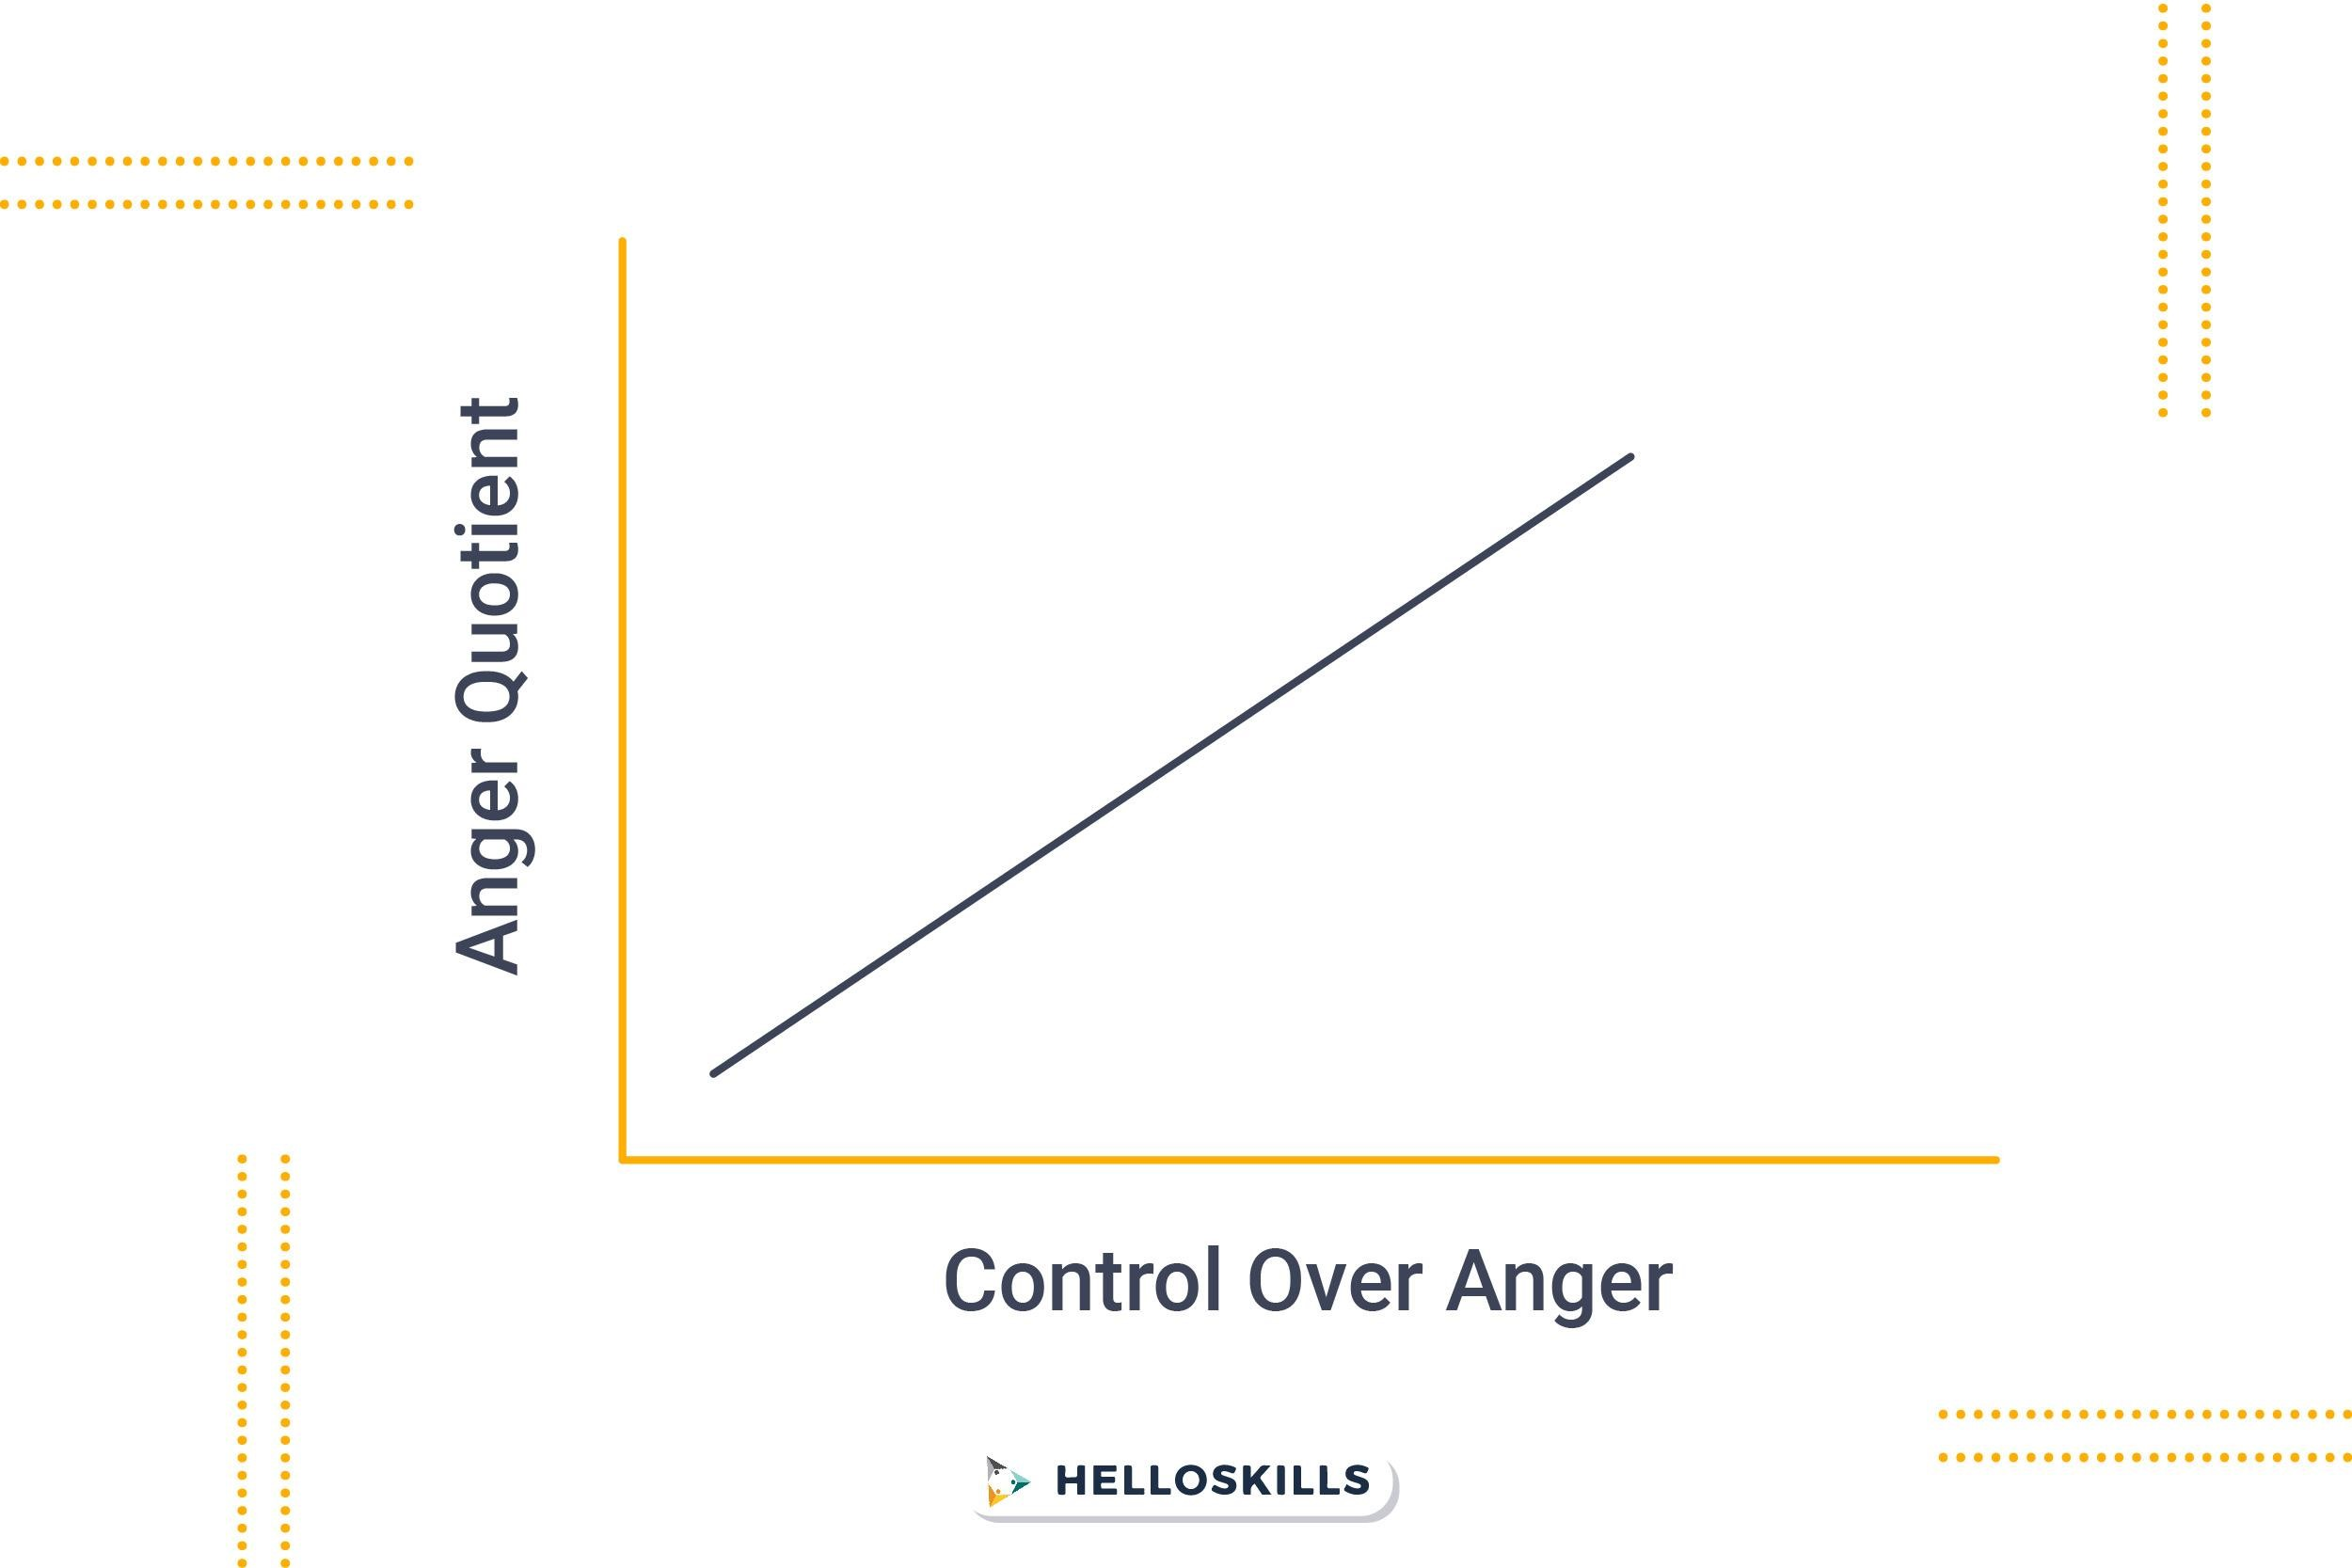 Anger quotient vs Contol over anger